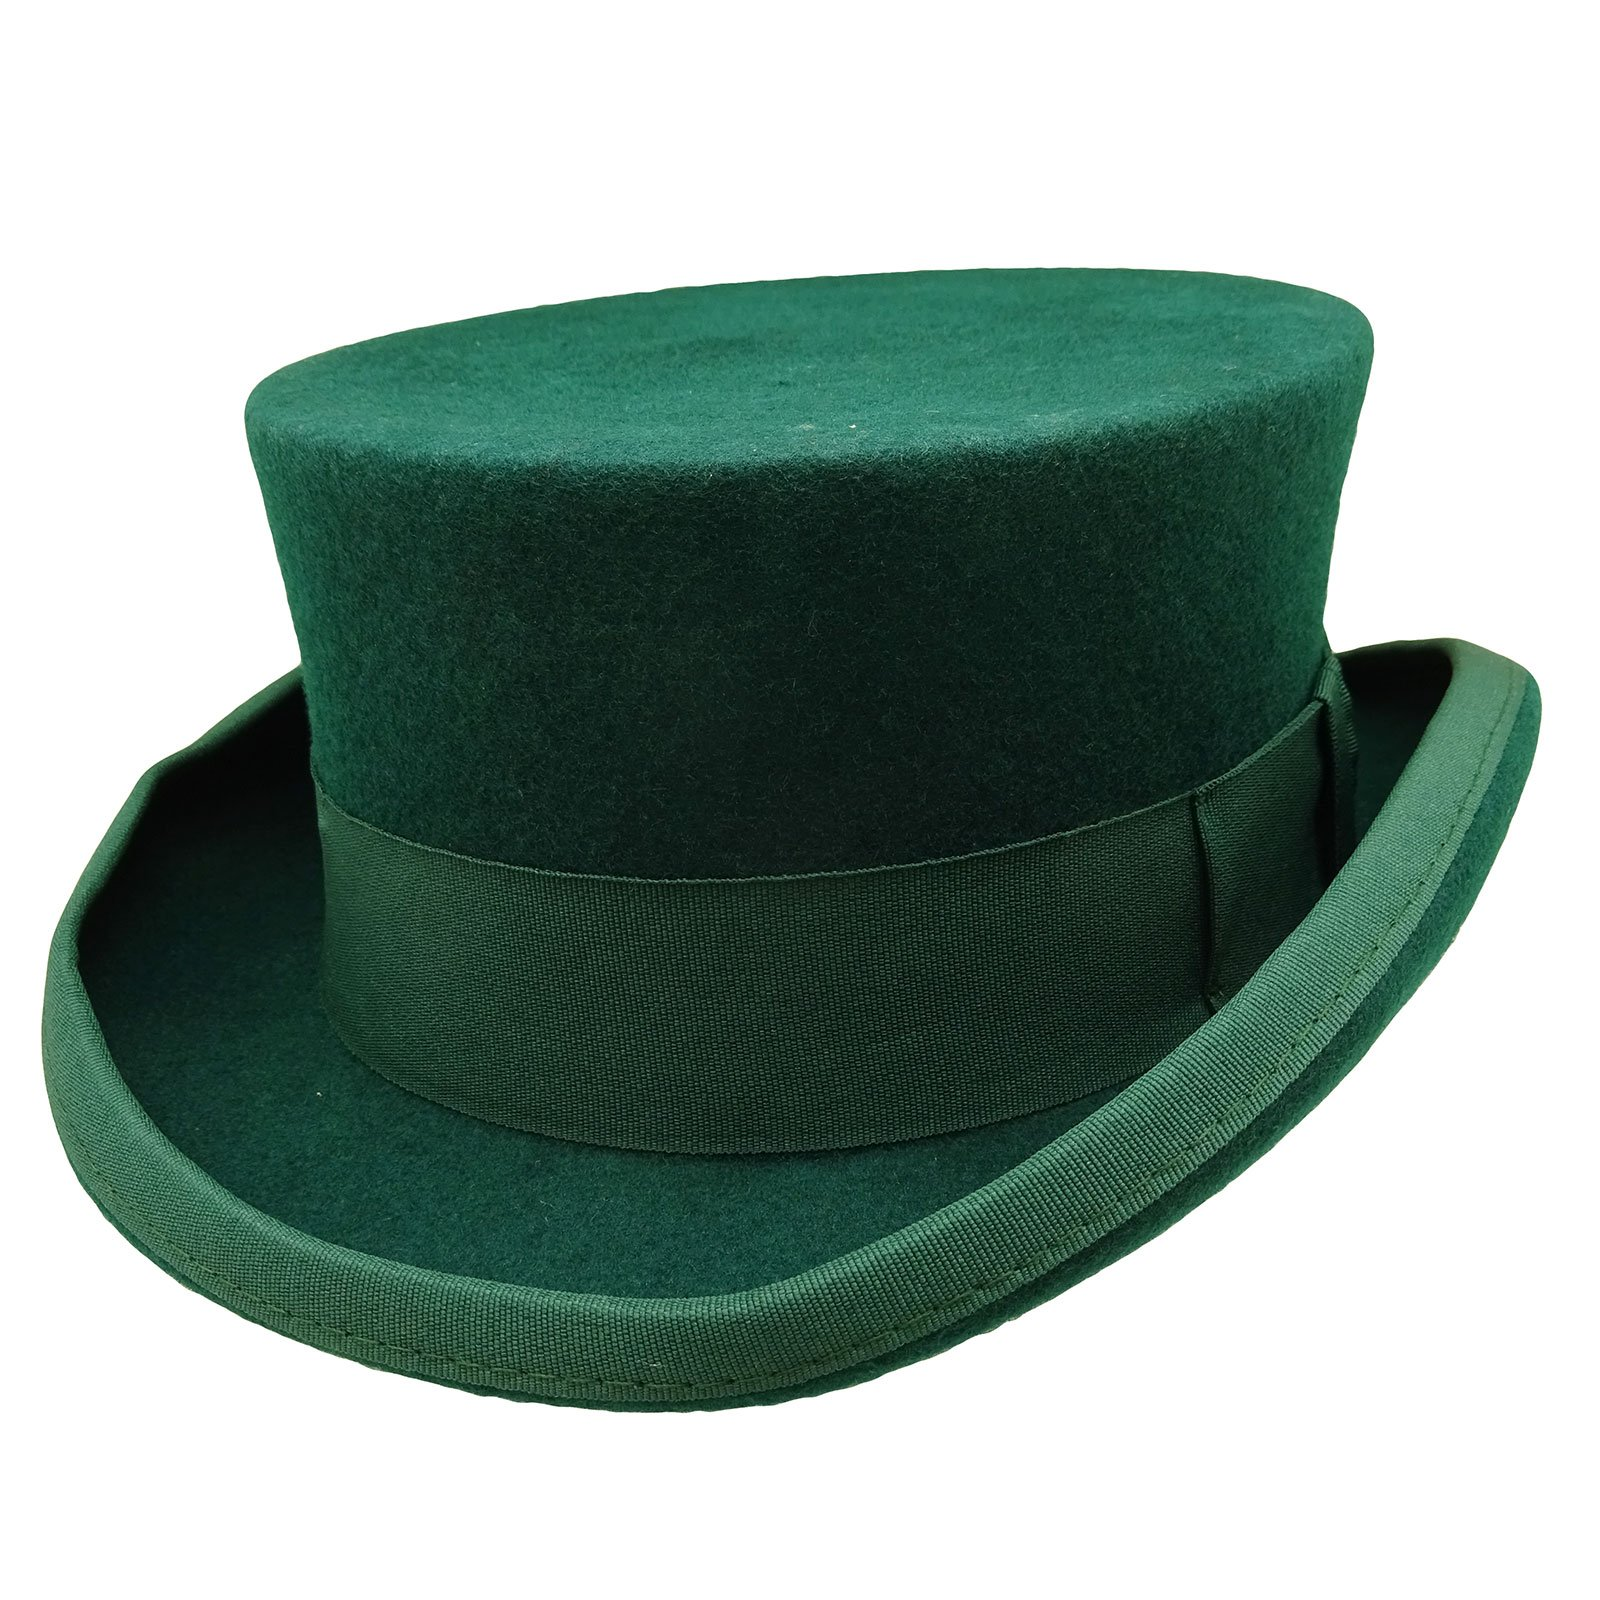 HATsanity Unisex Vintage Wool Felt Formal Tuxedo Coachman Hat (X-Large, Green)